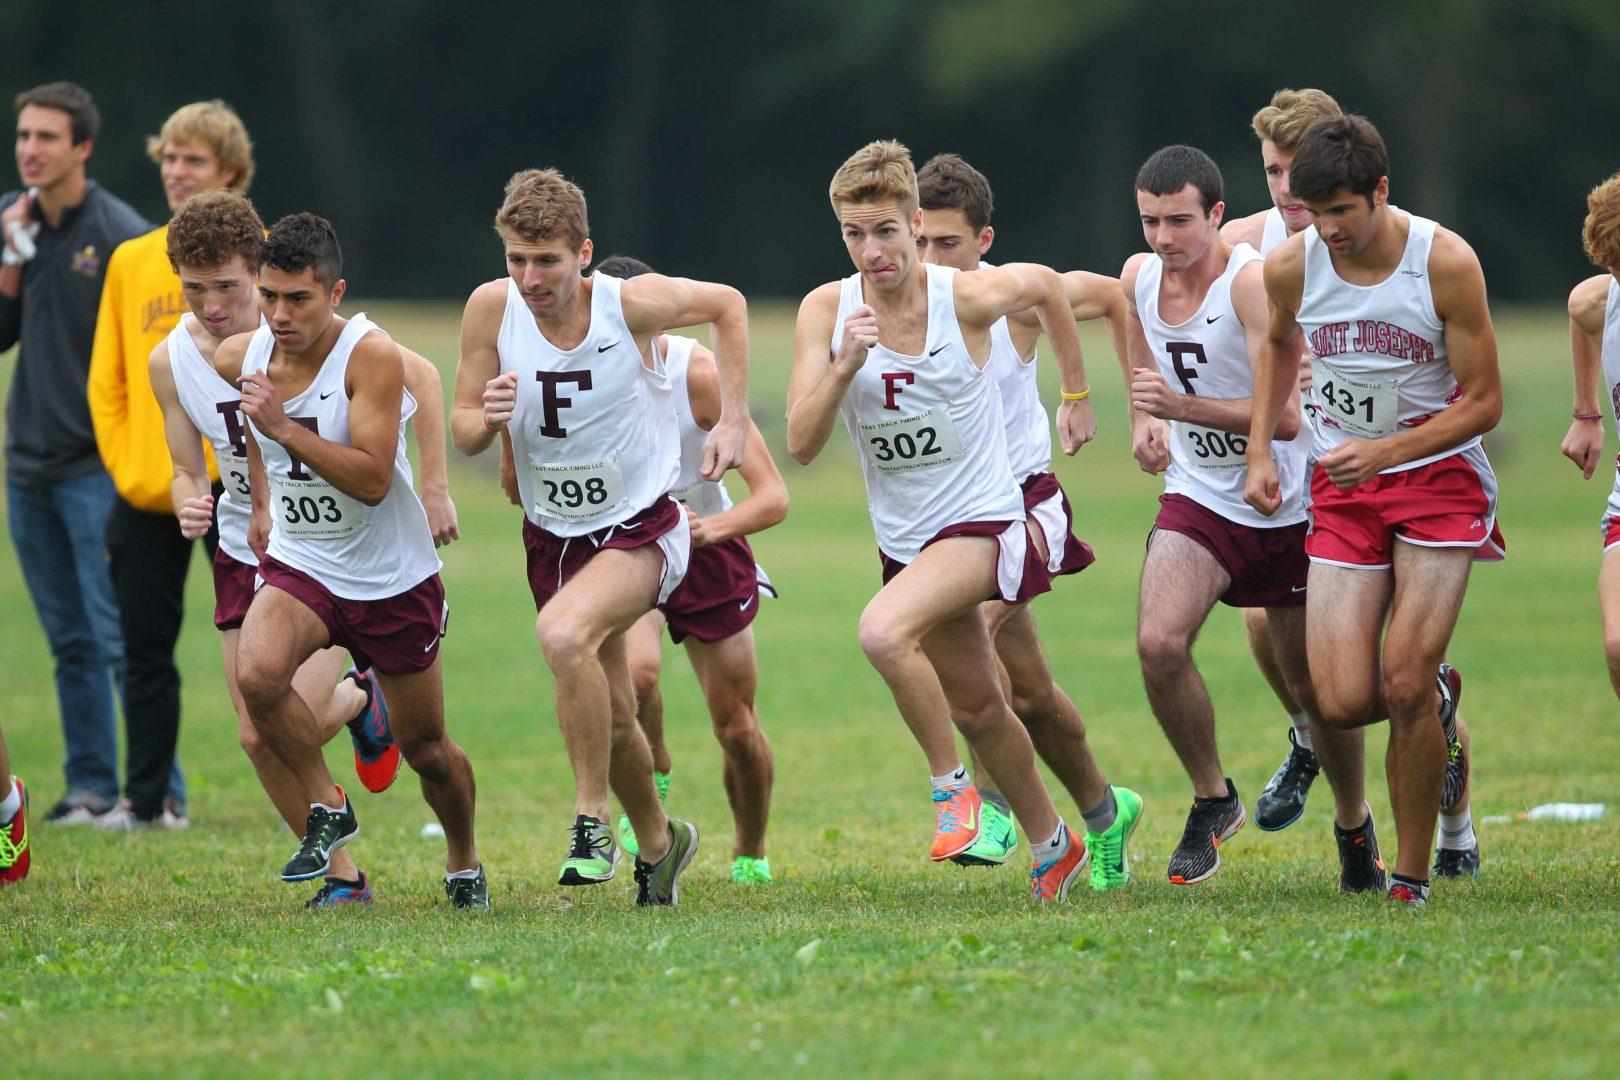 Men's Cross Country Places Third in Metropolitan Championship